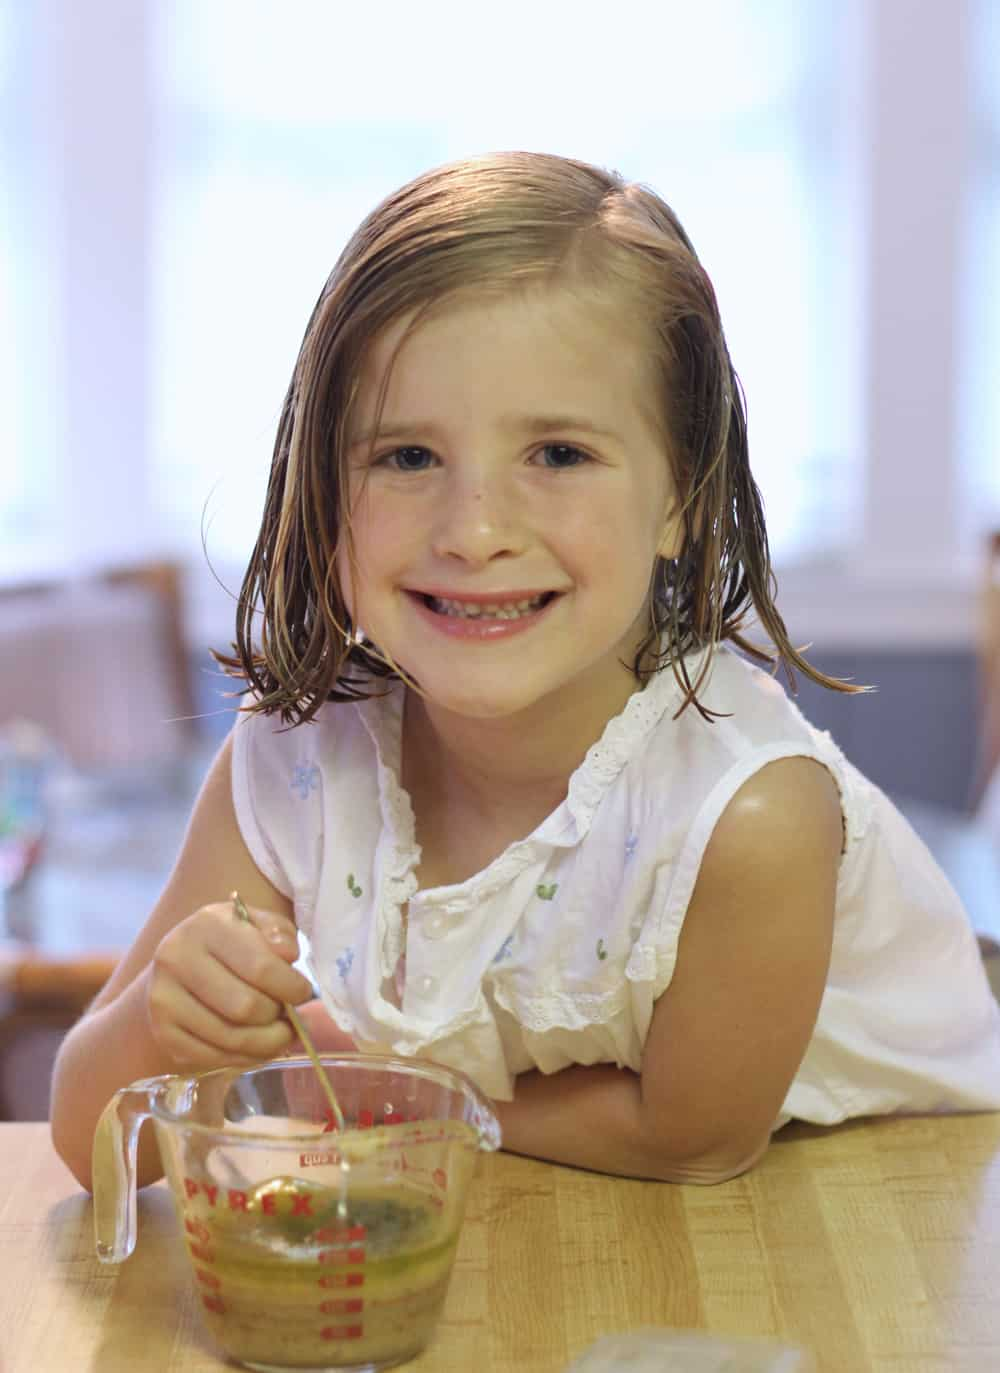 smiling little girl in white nightgown stirring a marinade in a glass measuring cup